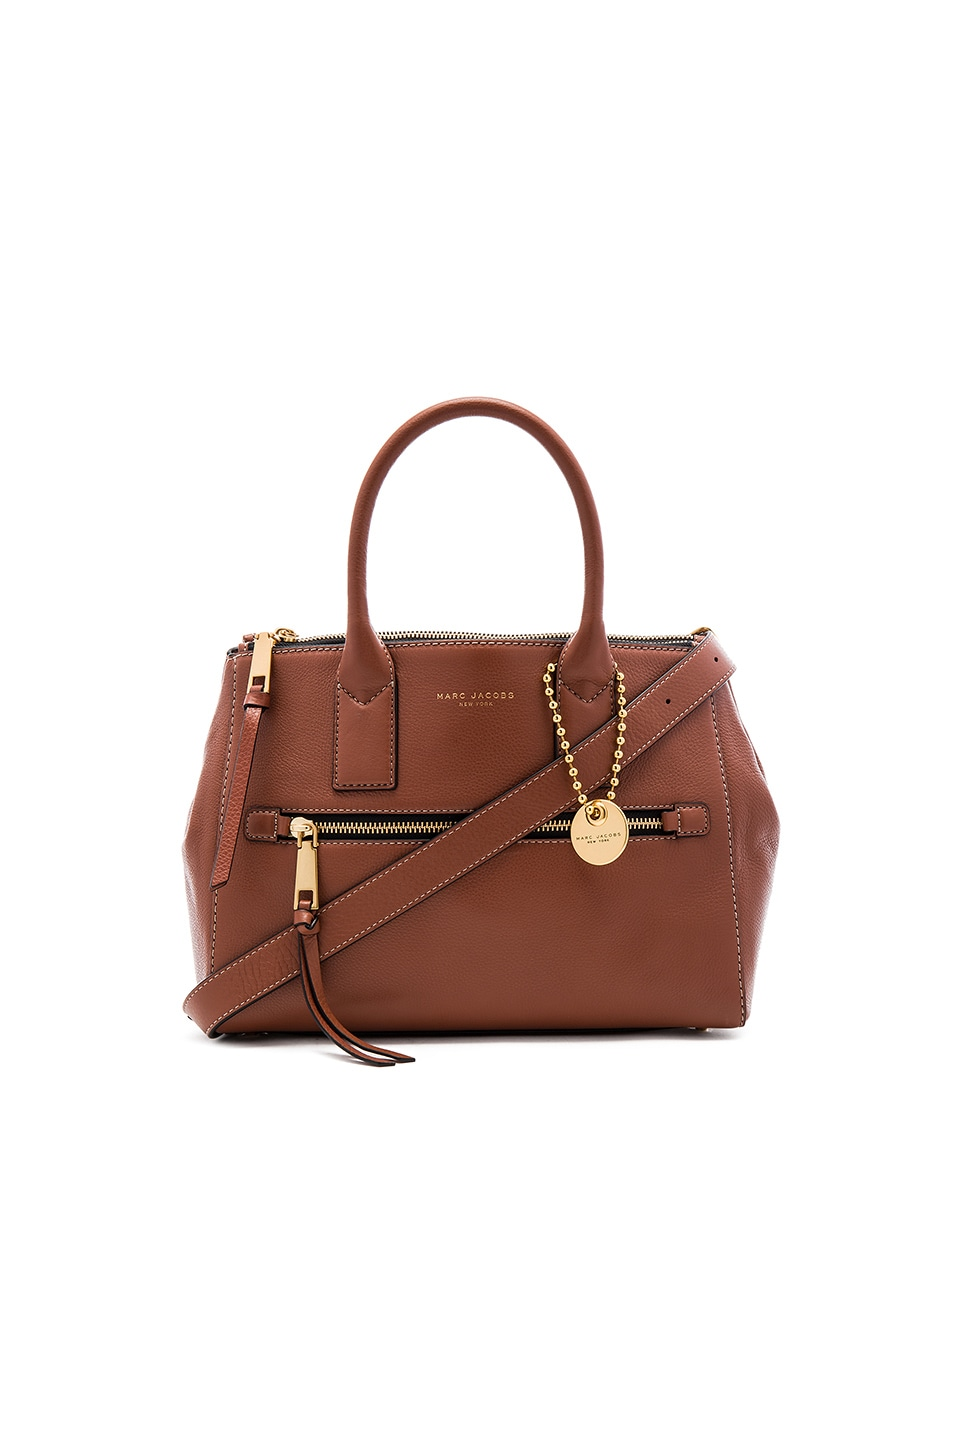 Marc Jacobs Recruit E/W Tote in Cognac